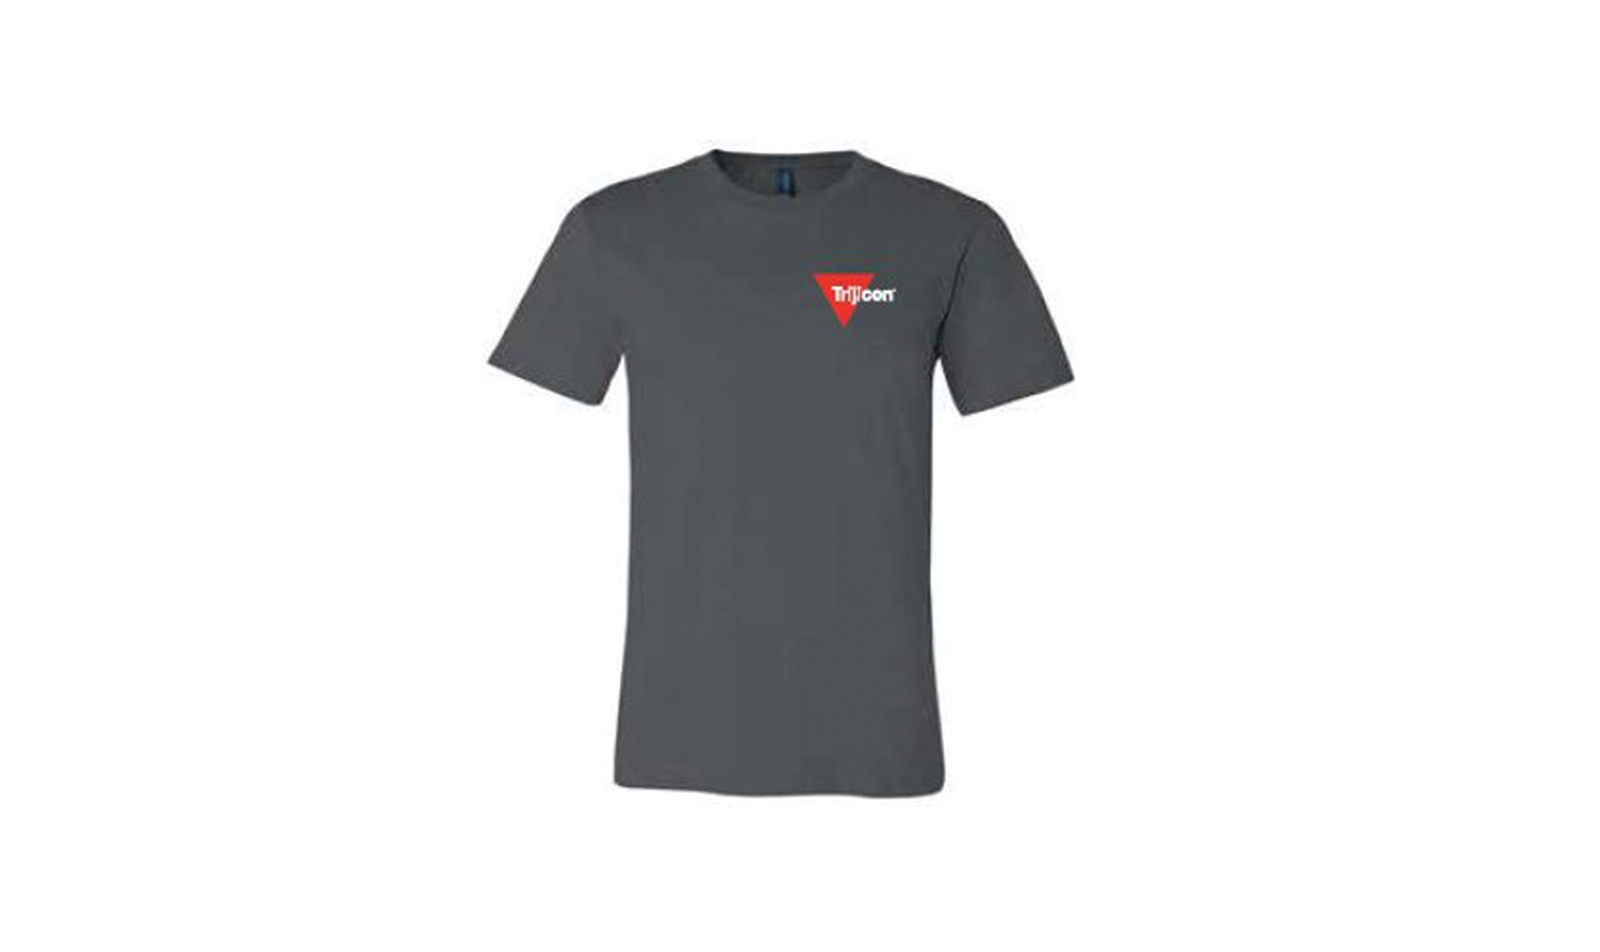 Trijicon<sup>®</sup> Jersey T-Shirt - Gray - MD